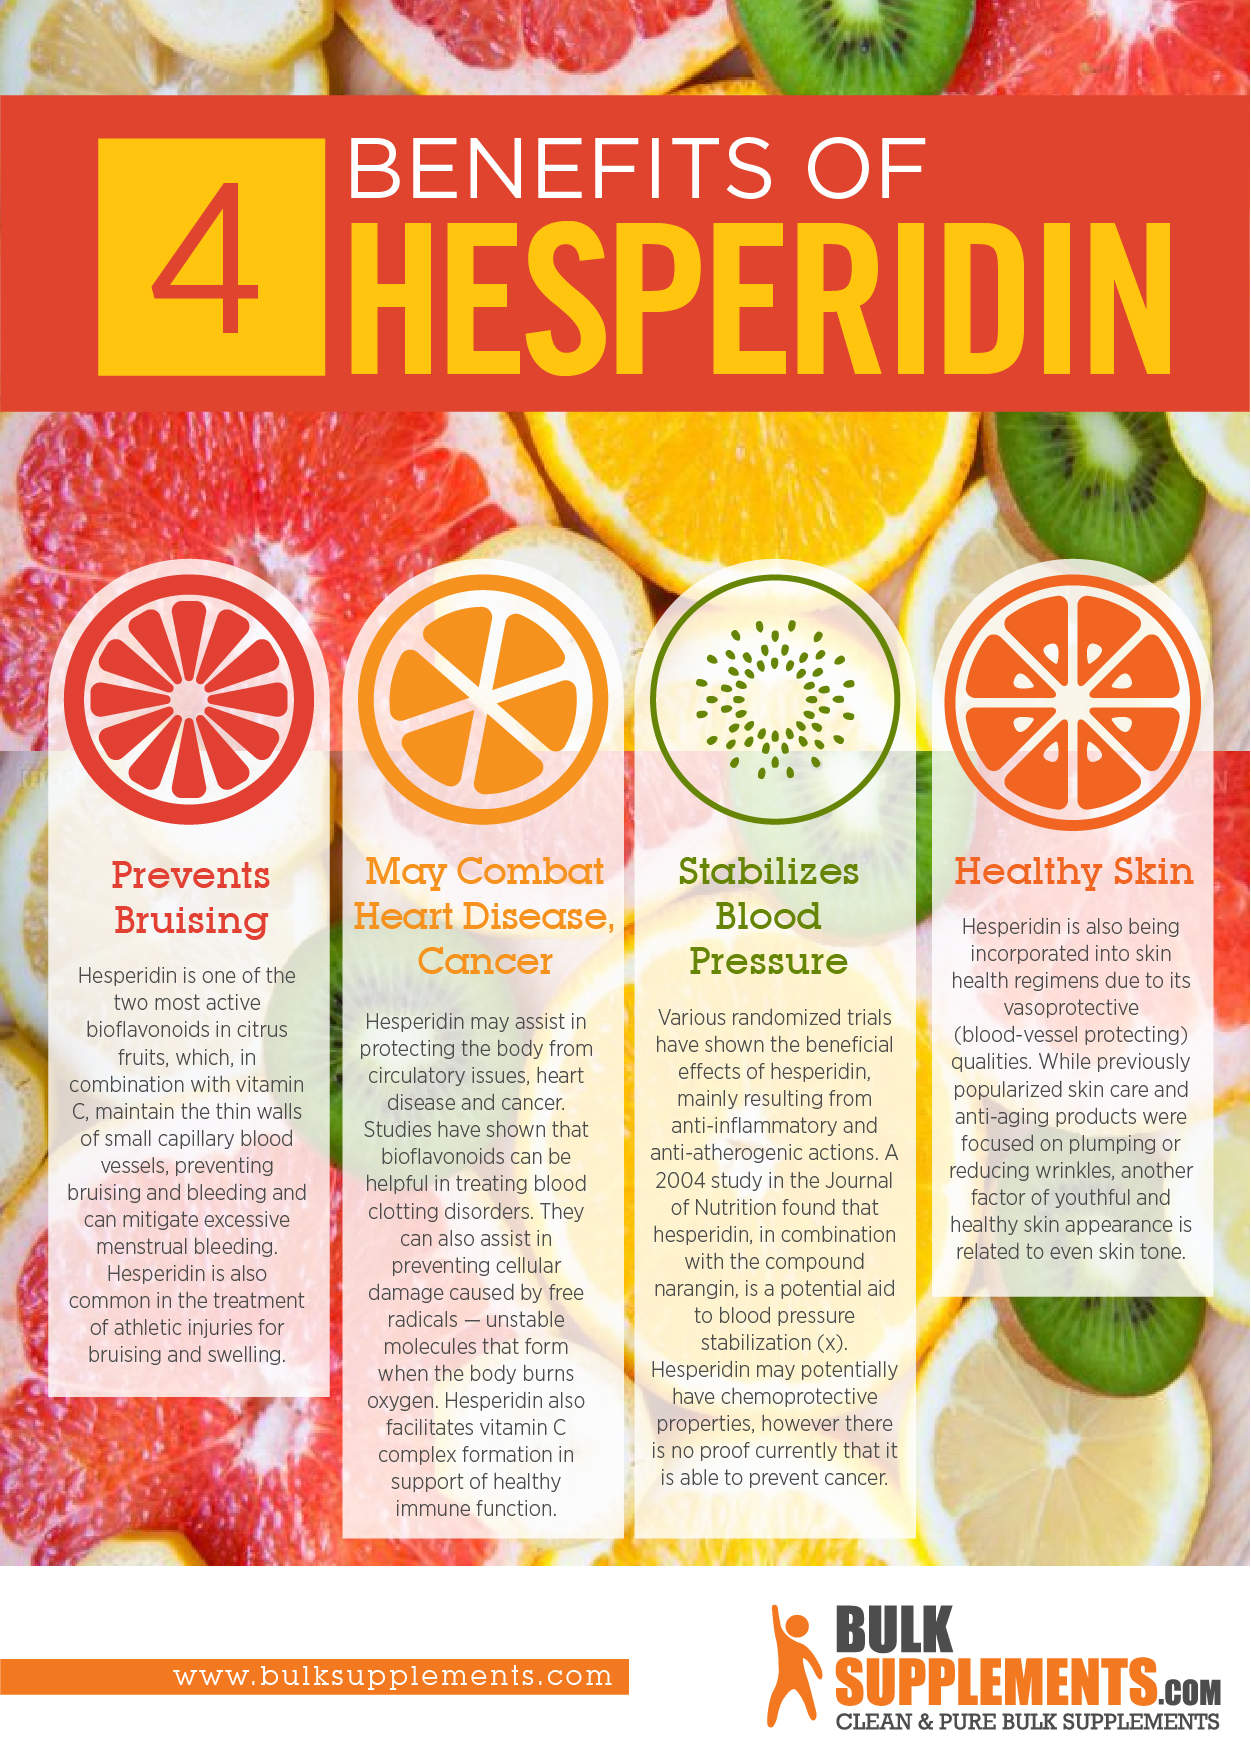 hesperidin benefits